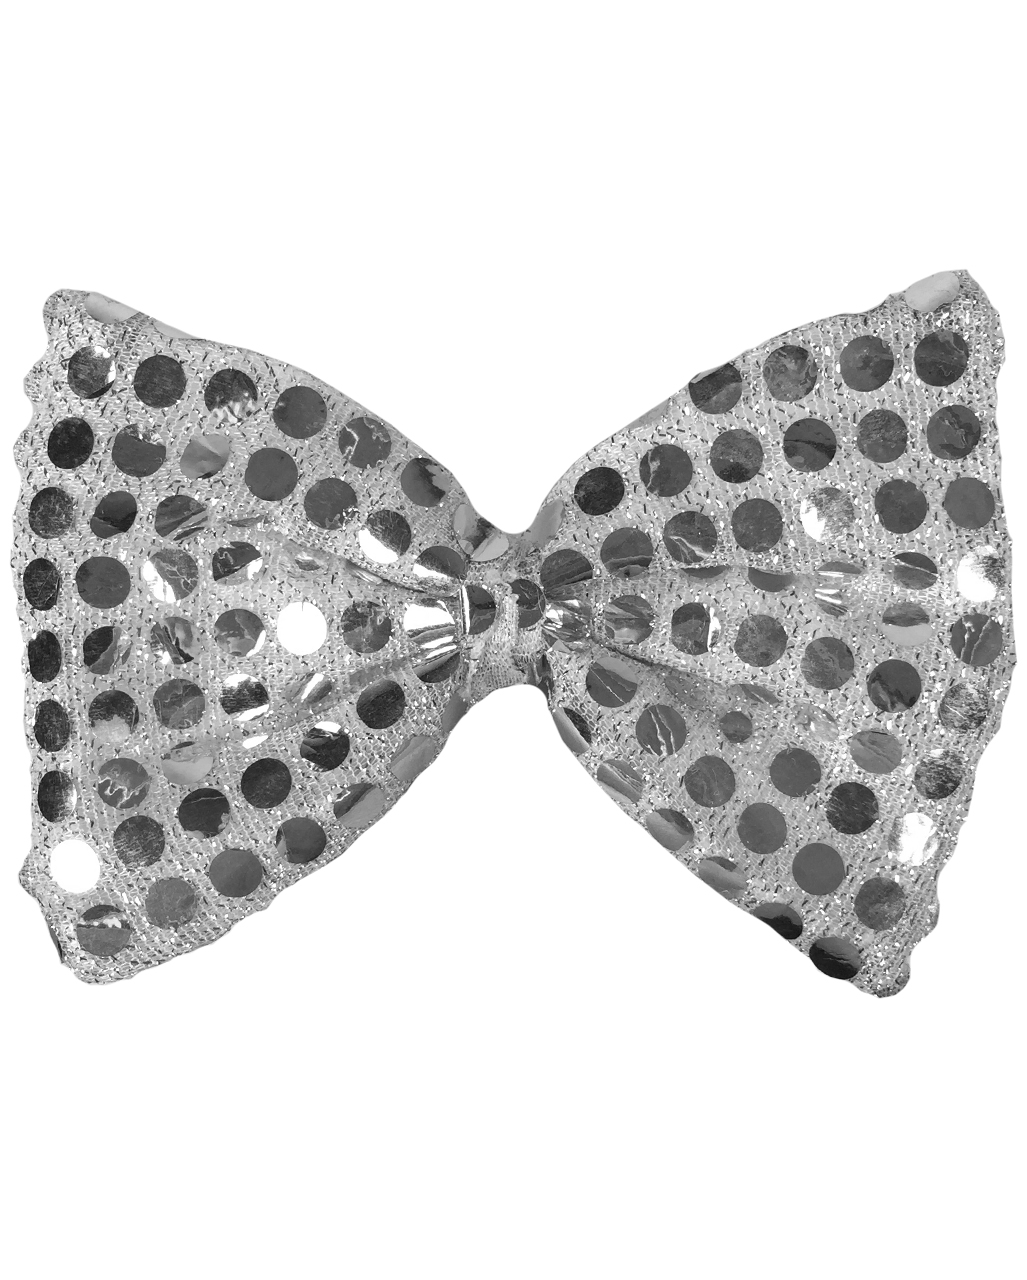 SILVER SEQUIN BOW TIE DISCO FANCY DRESS ACCESSORIES